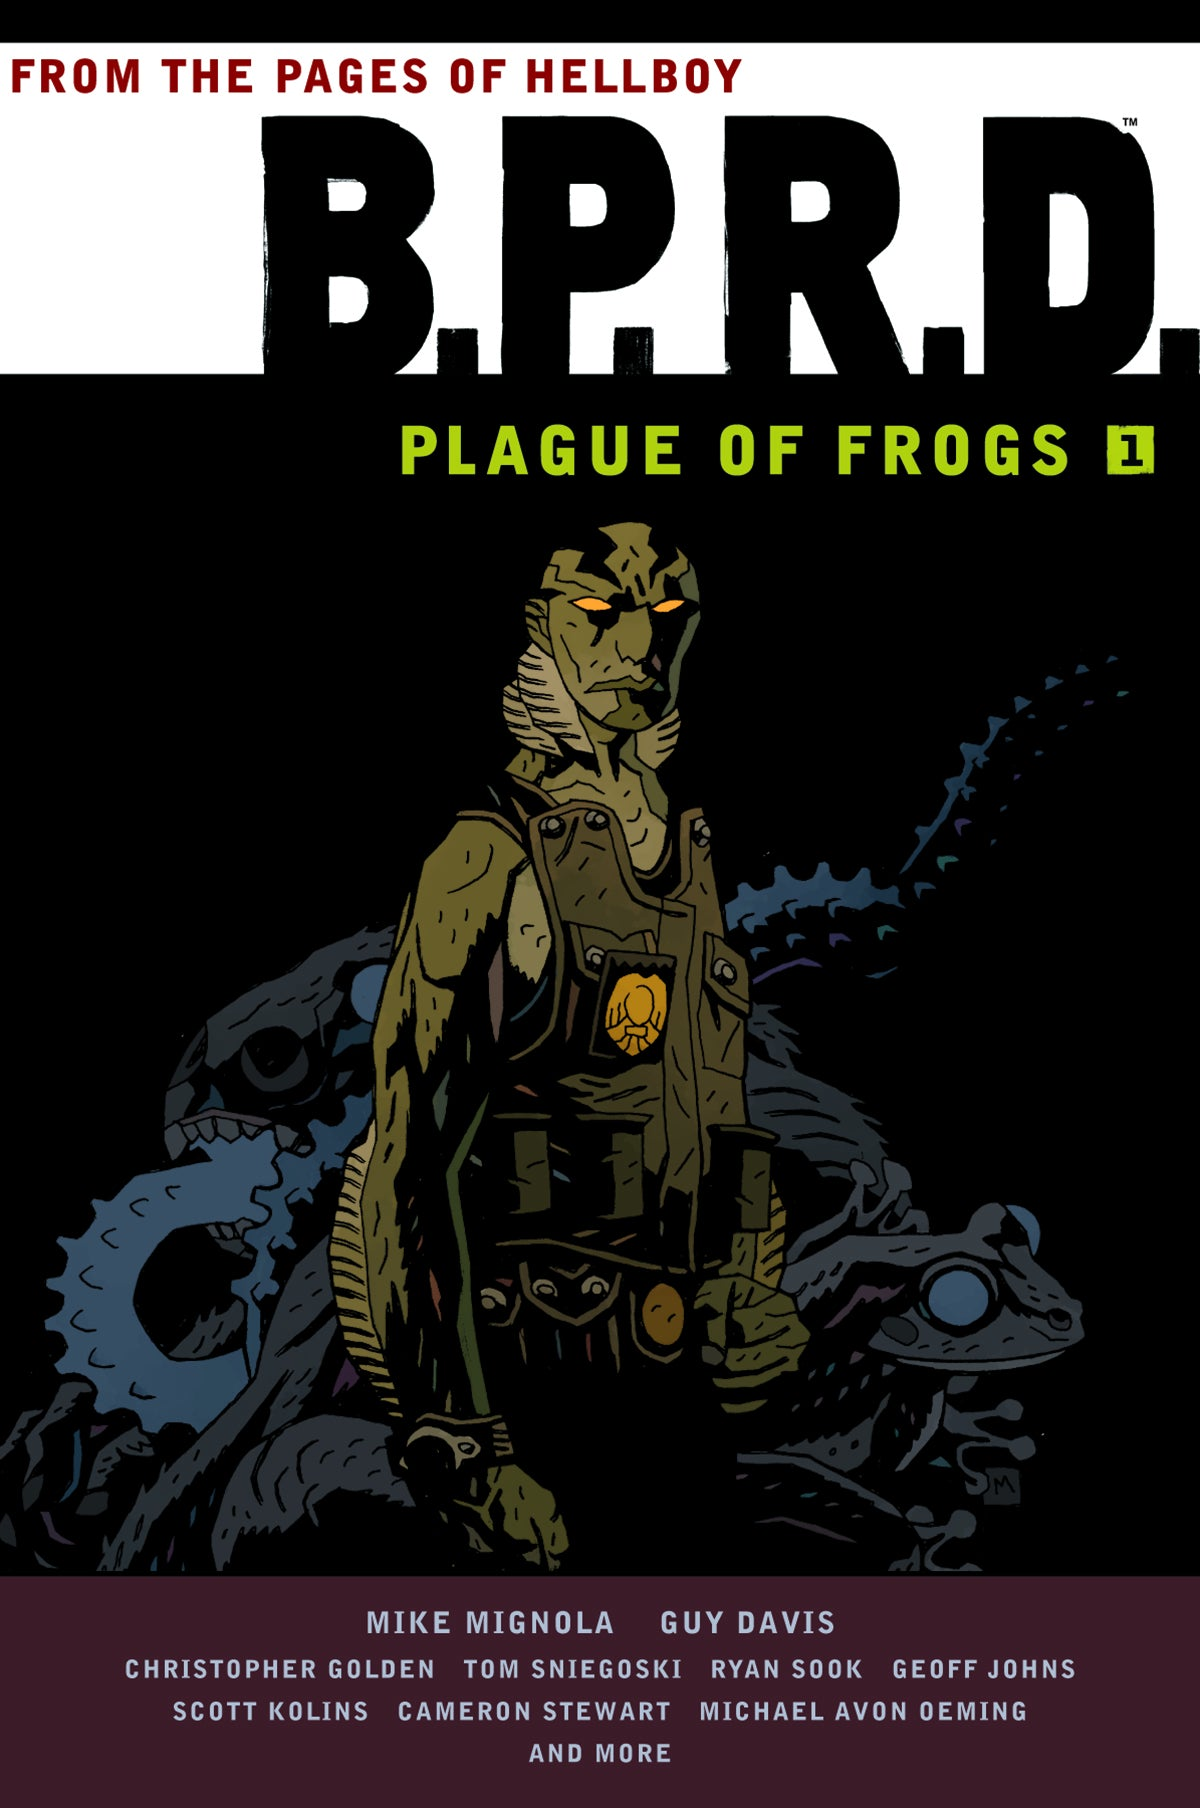 BPRD PLAGUE OF FROGS TP VOL 01 | The Multiverse